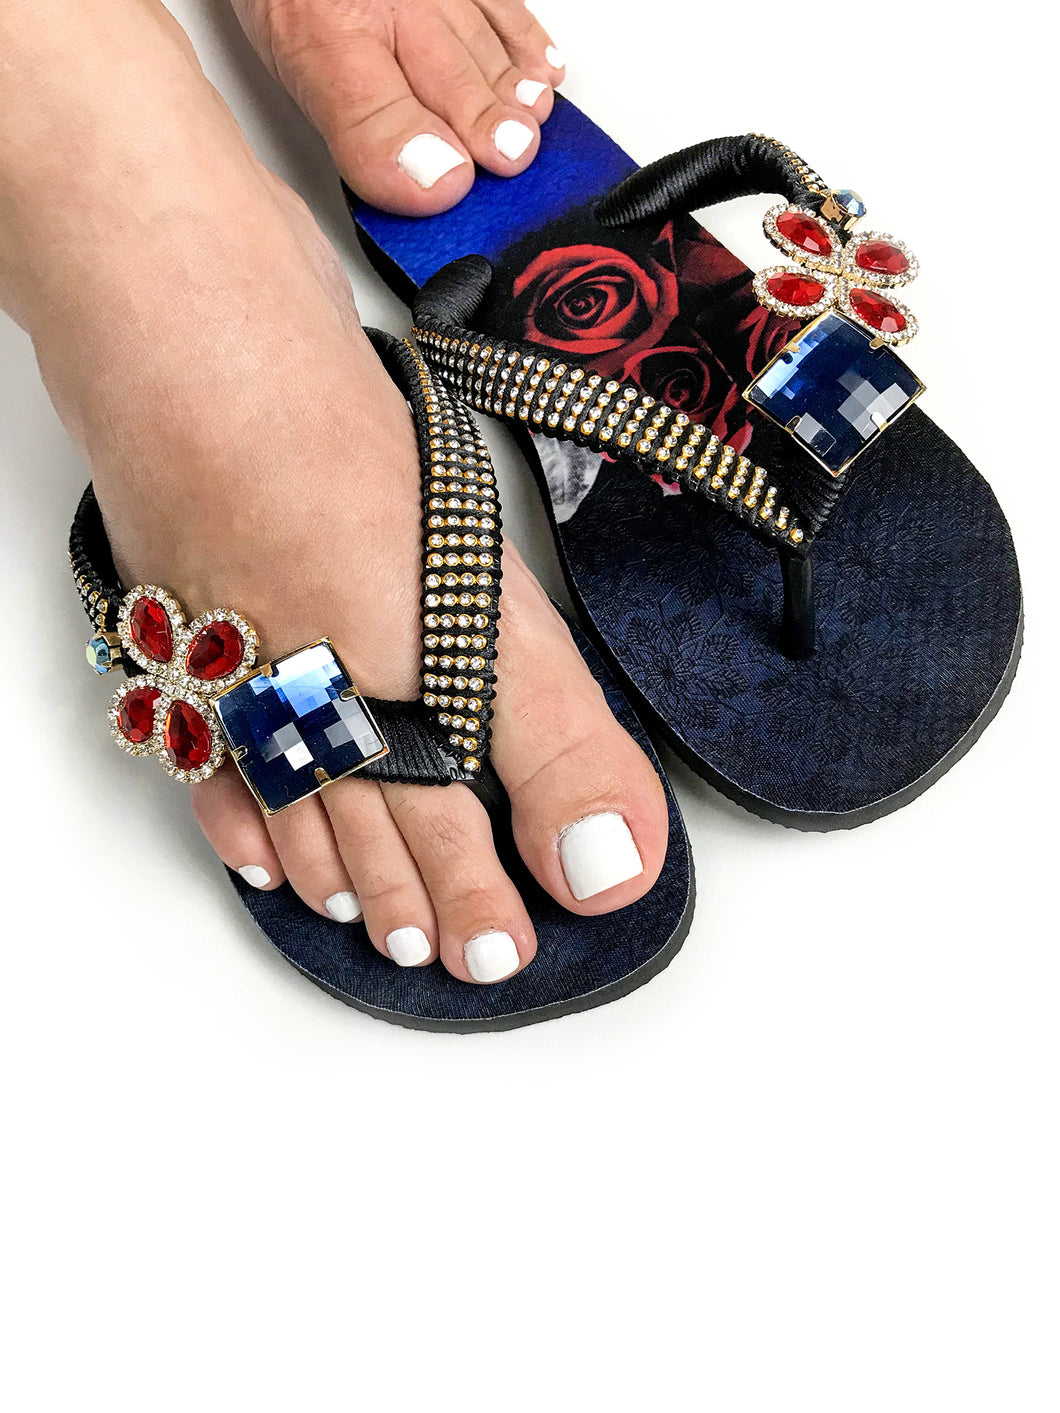 Customized HAVAIANAS, exclusive roses pattern, red and blue rhinestones/crystals - TOP